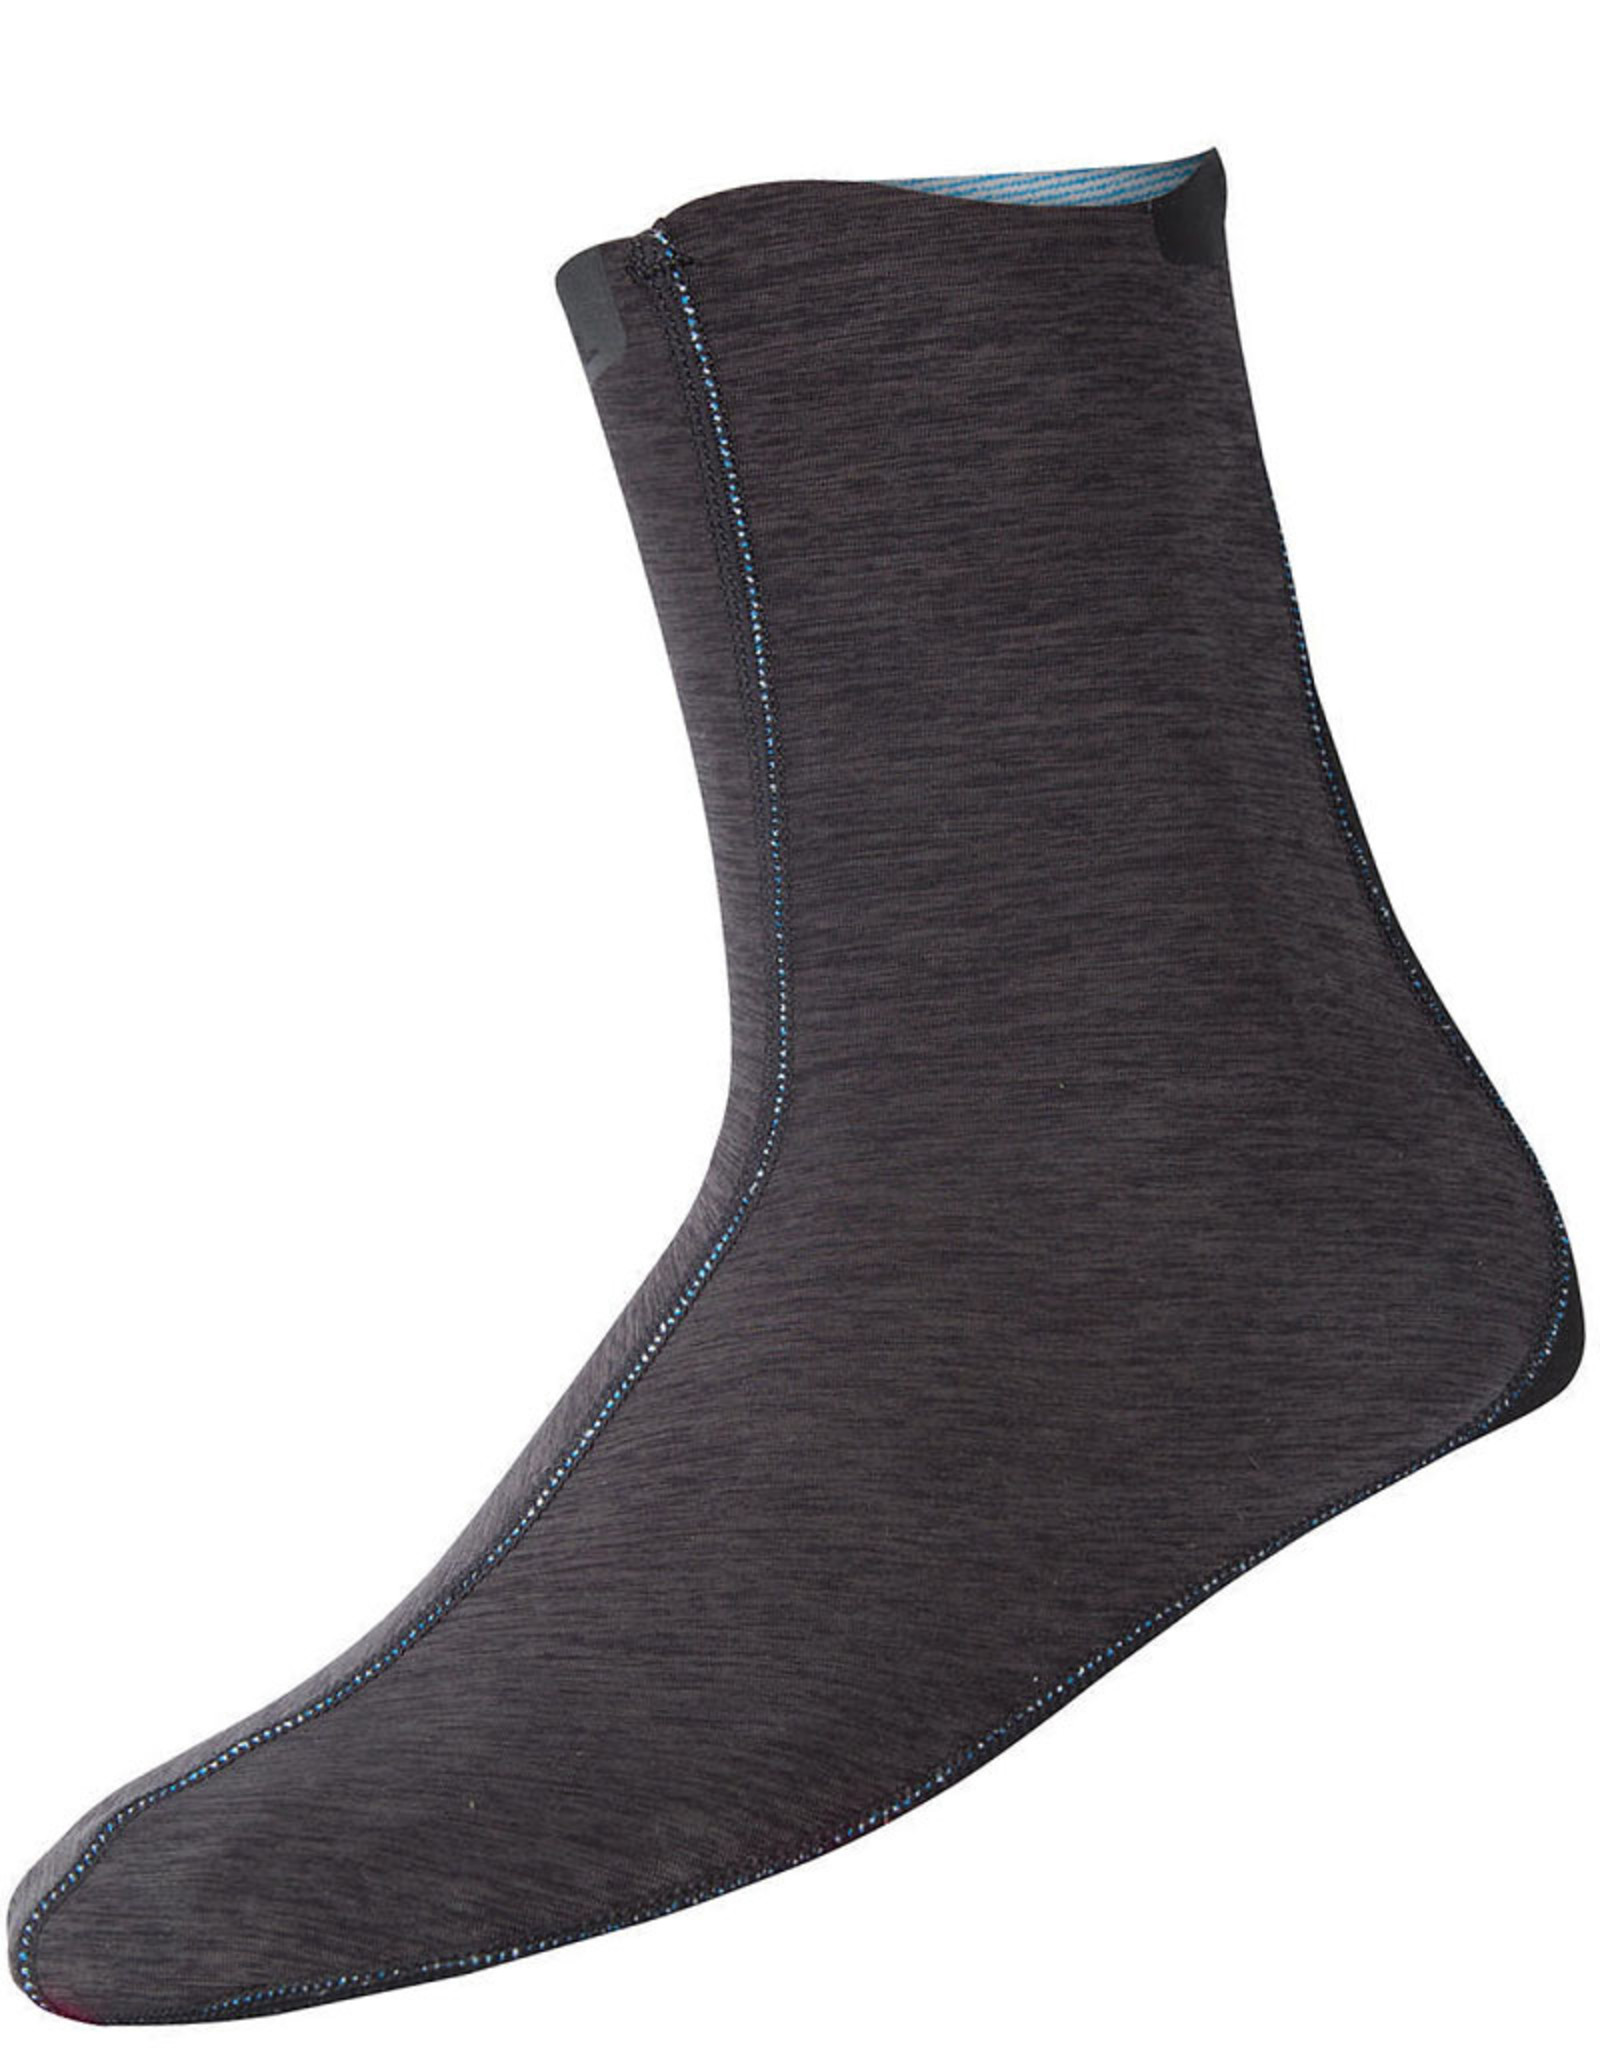 NRS NRS Hydroskin 0.5 Wetsock